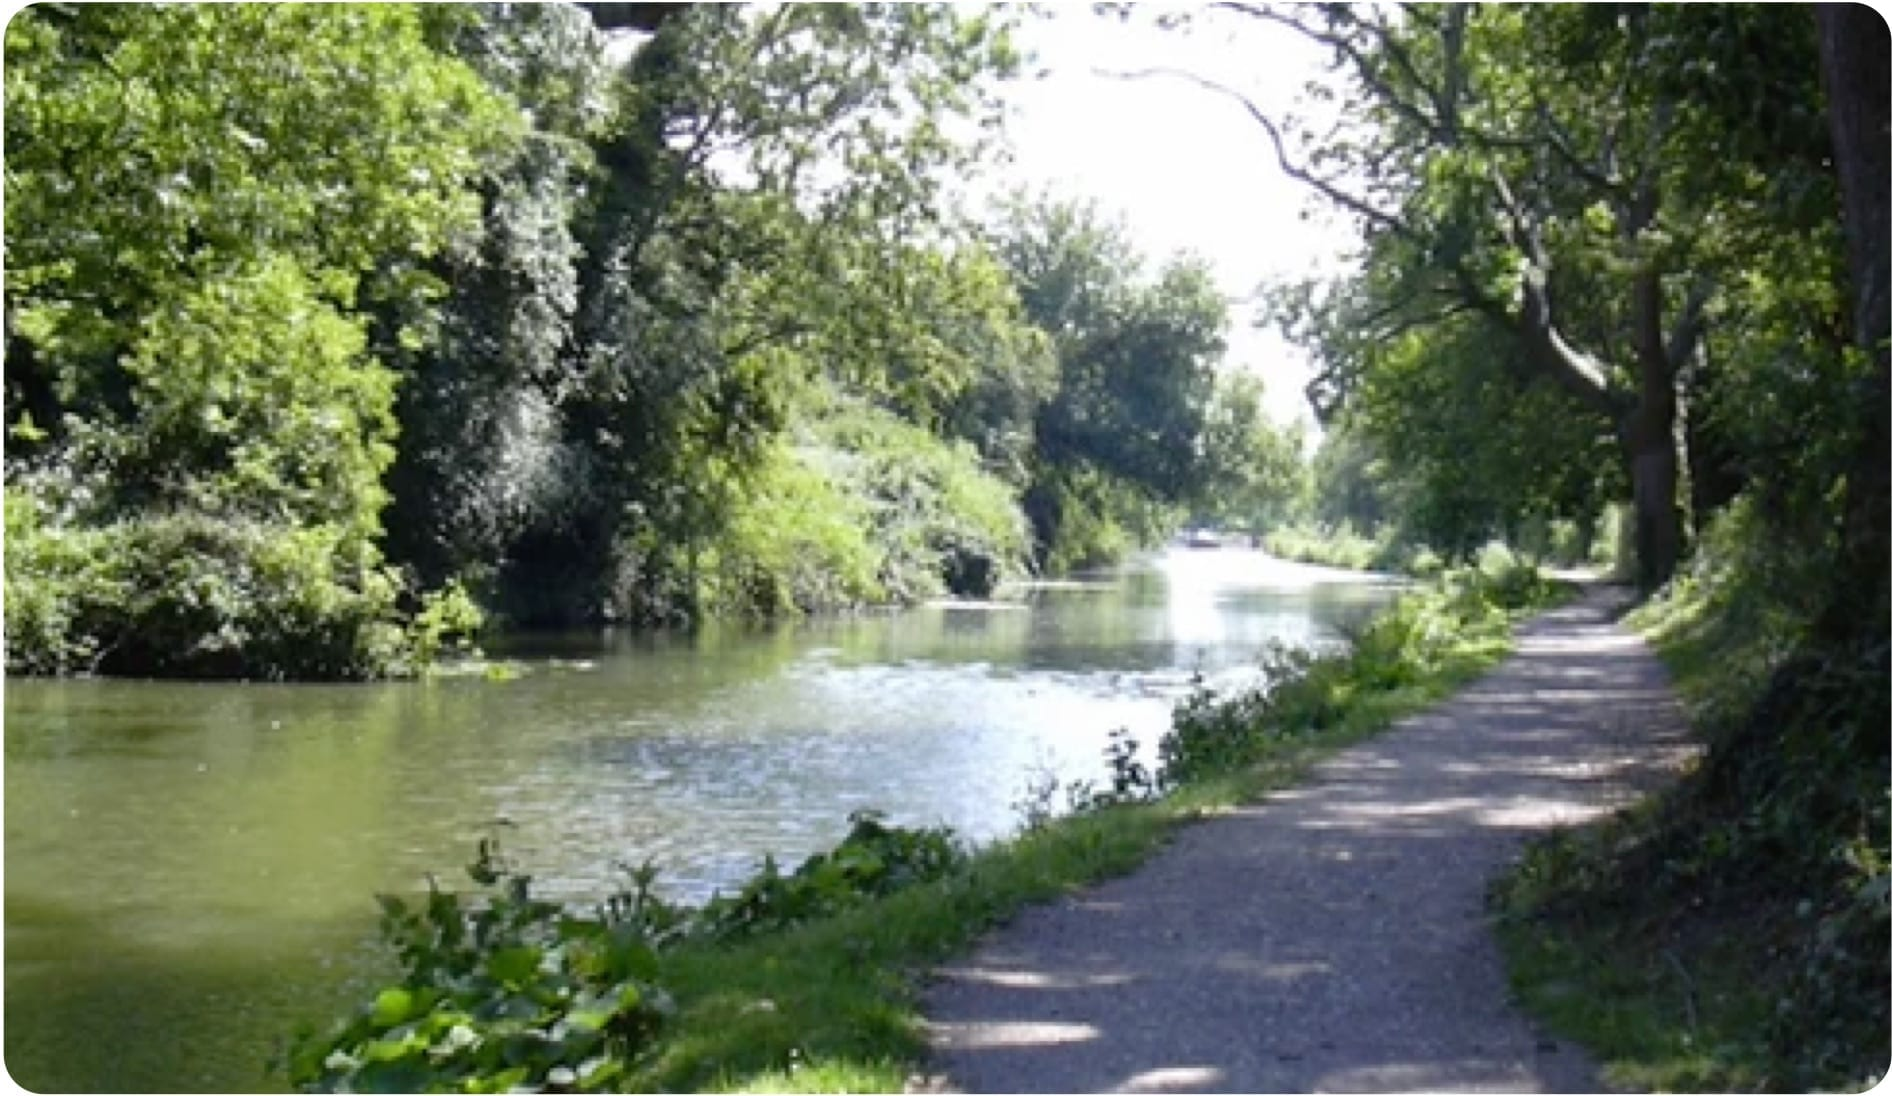 With our Chichester Campervan Hire you can enjoy trips to the Chichester Canal.